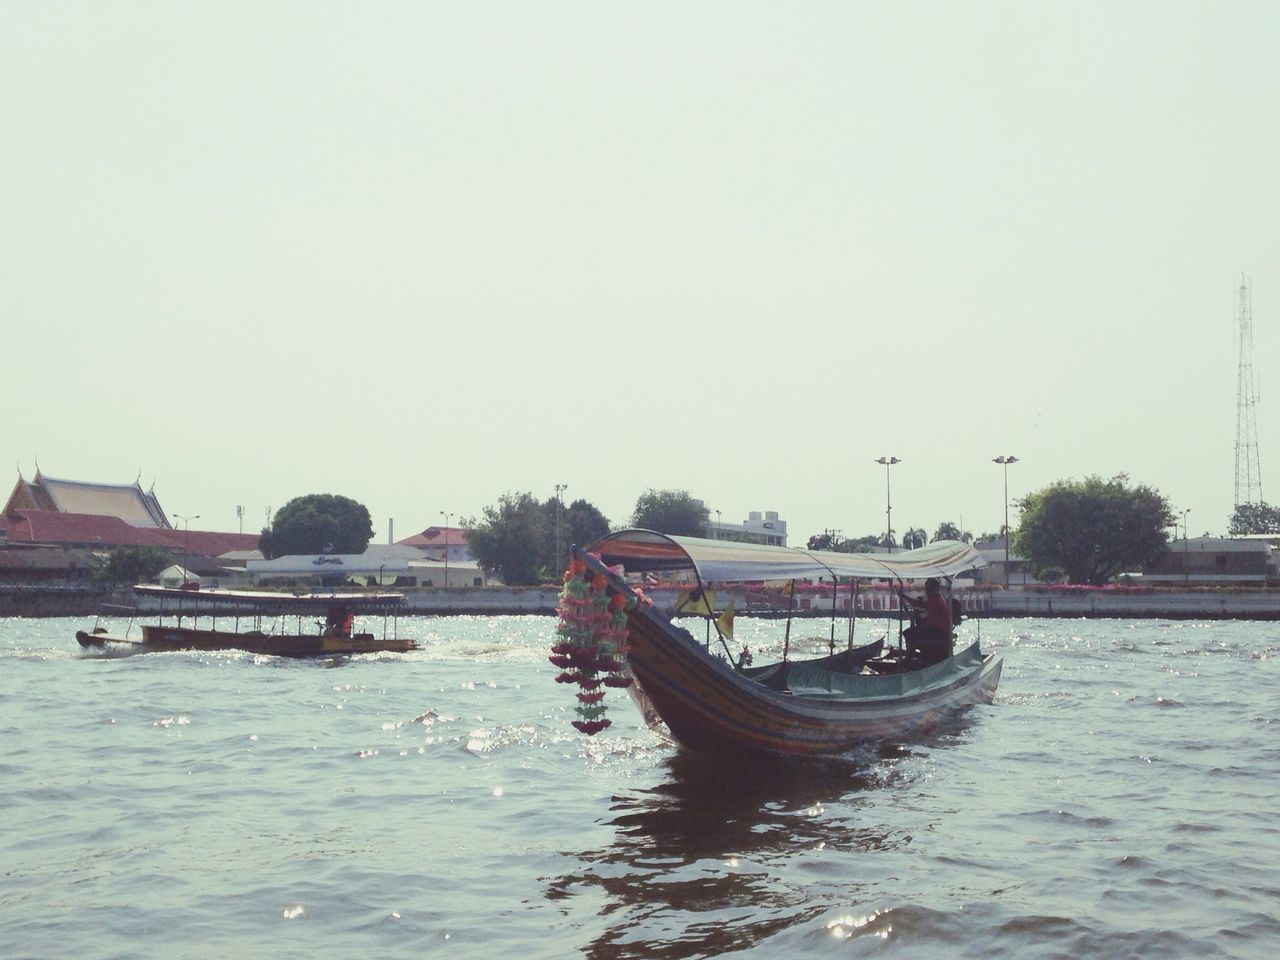 Floating boat Long Tail Boat Chao Phaya River Afternoon Wait For Customer Floating Swing By Wave Ready To Take Off Bangkok Thailand Spotted In Thailand The Great Outdoors - 2016 EyeEm Awards